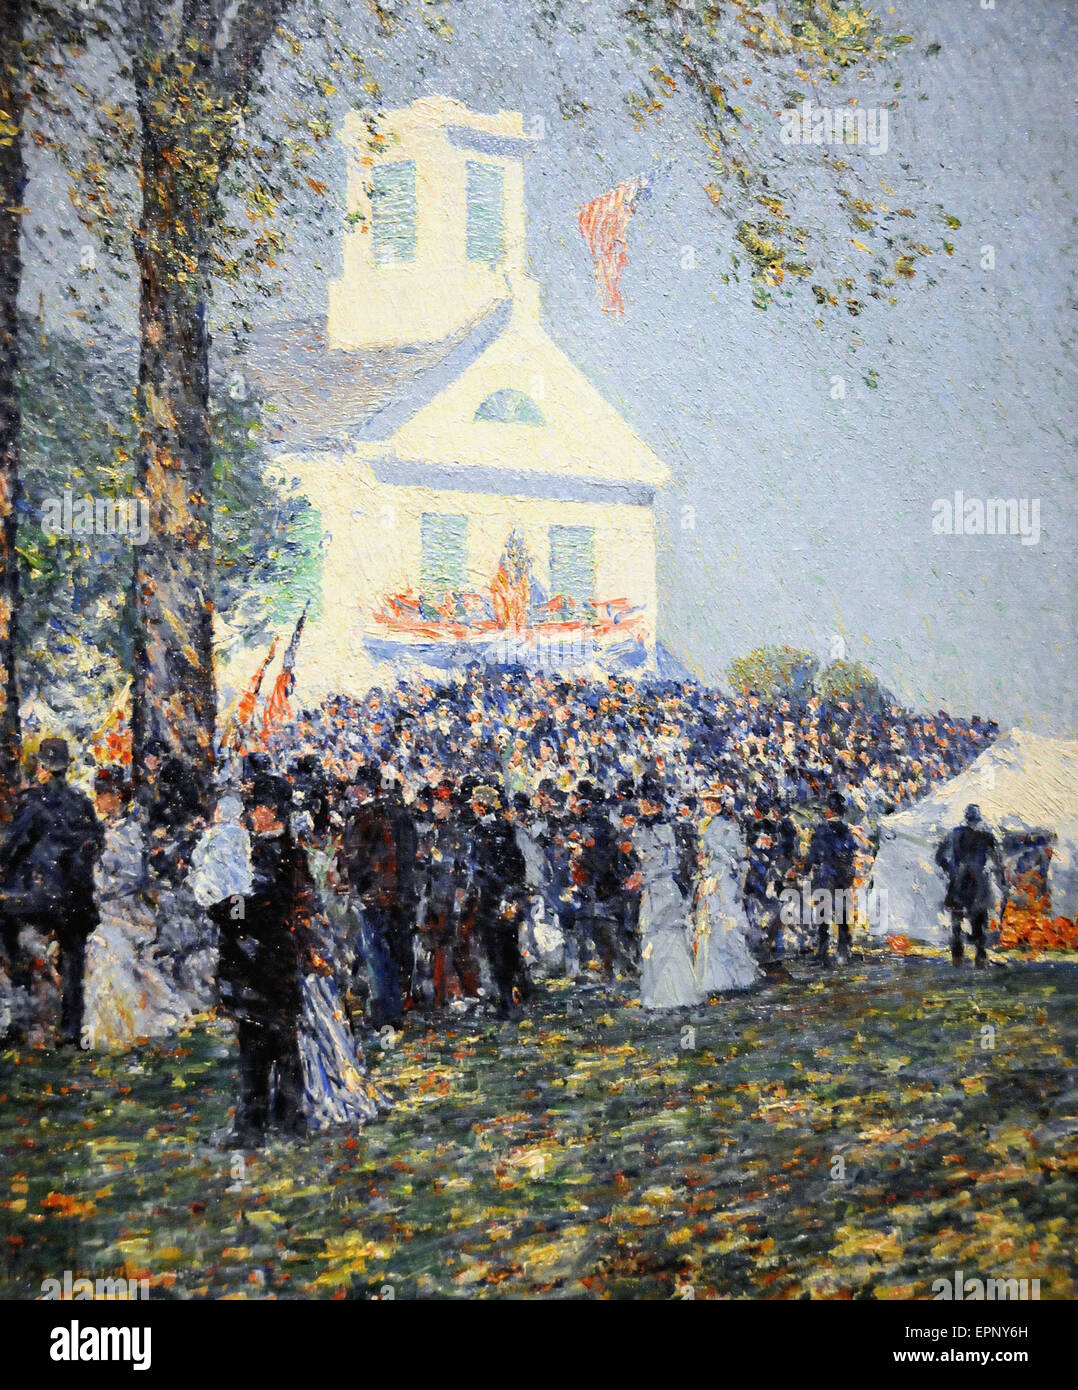 Childe Hassam Country Fair, New England Photo Stock